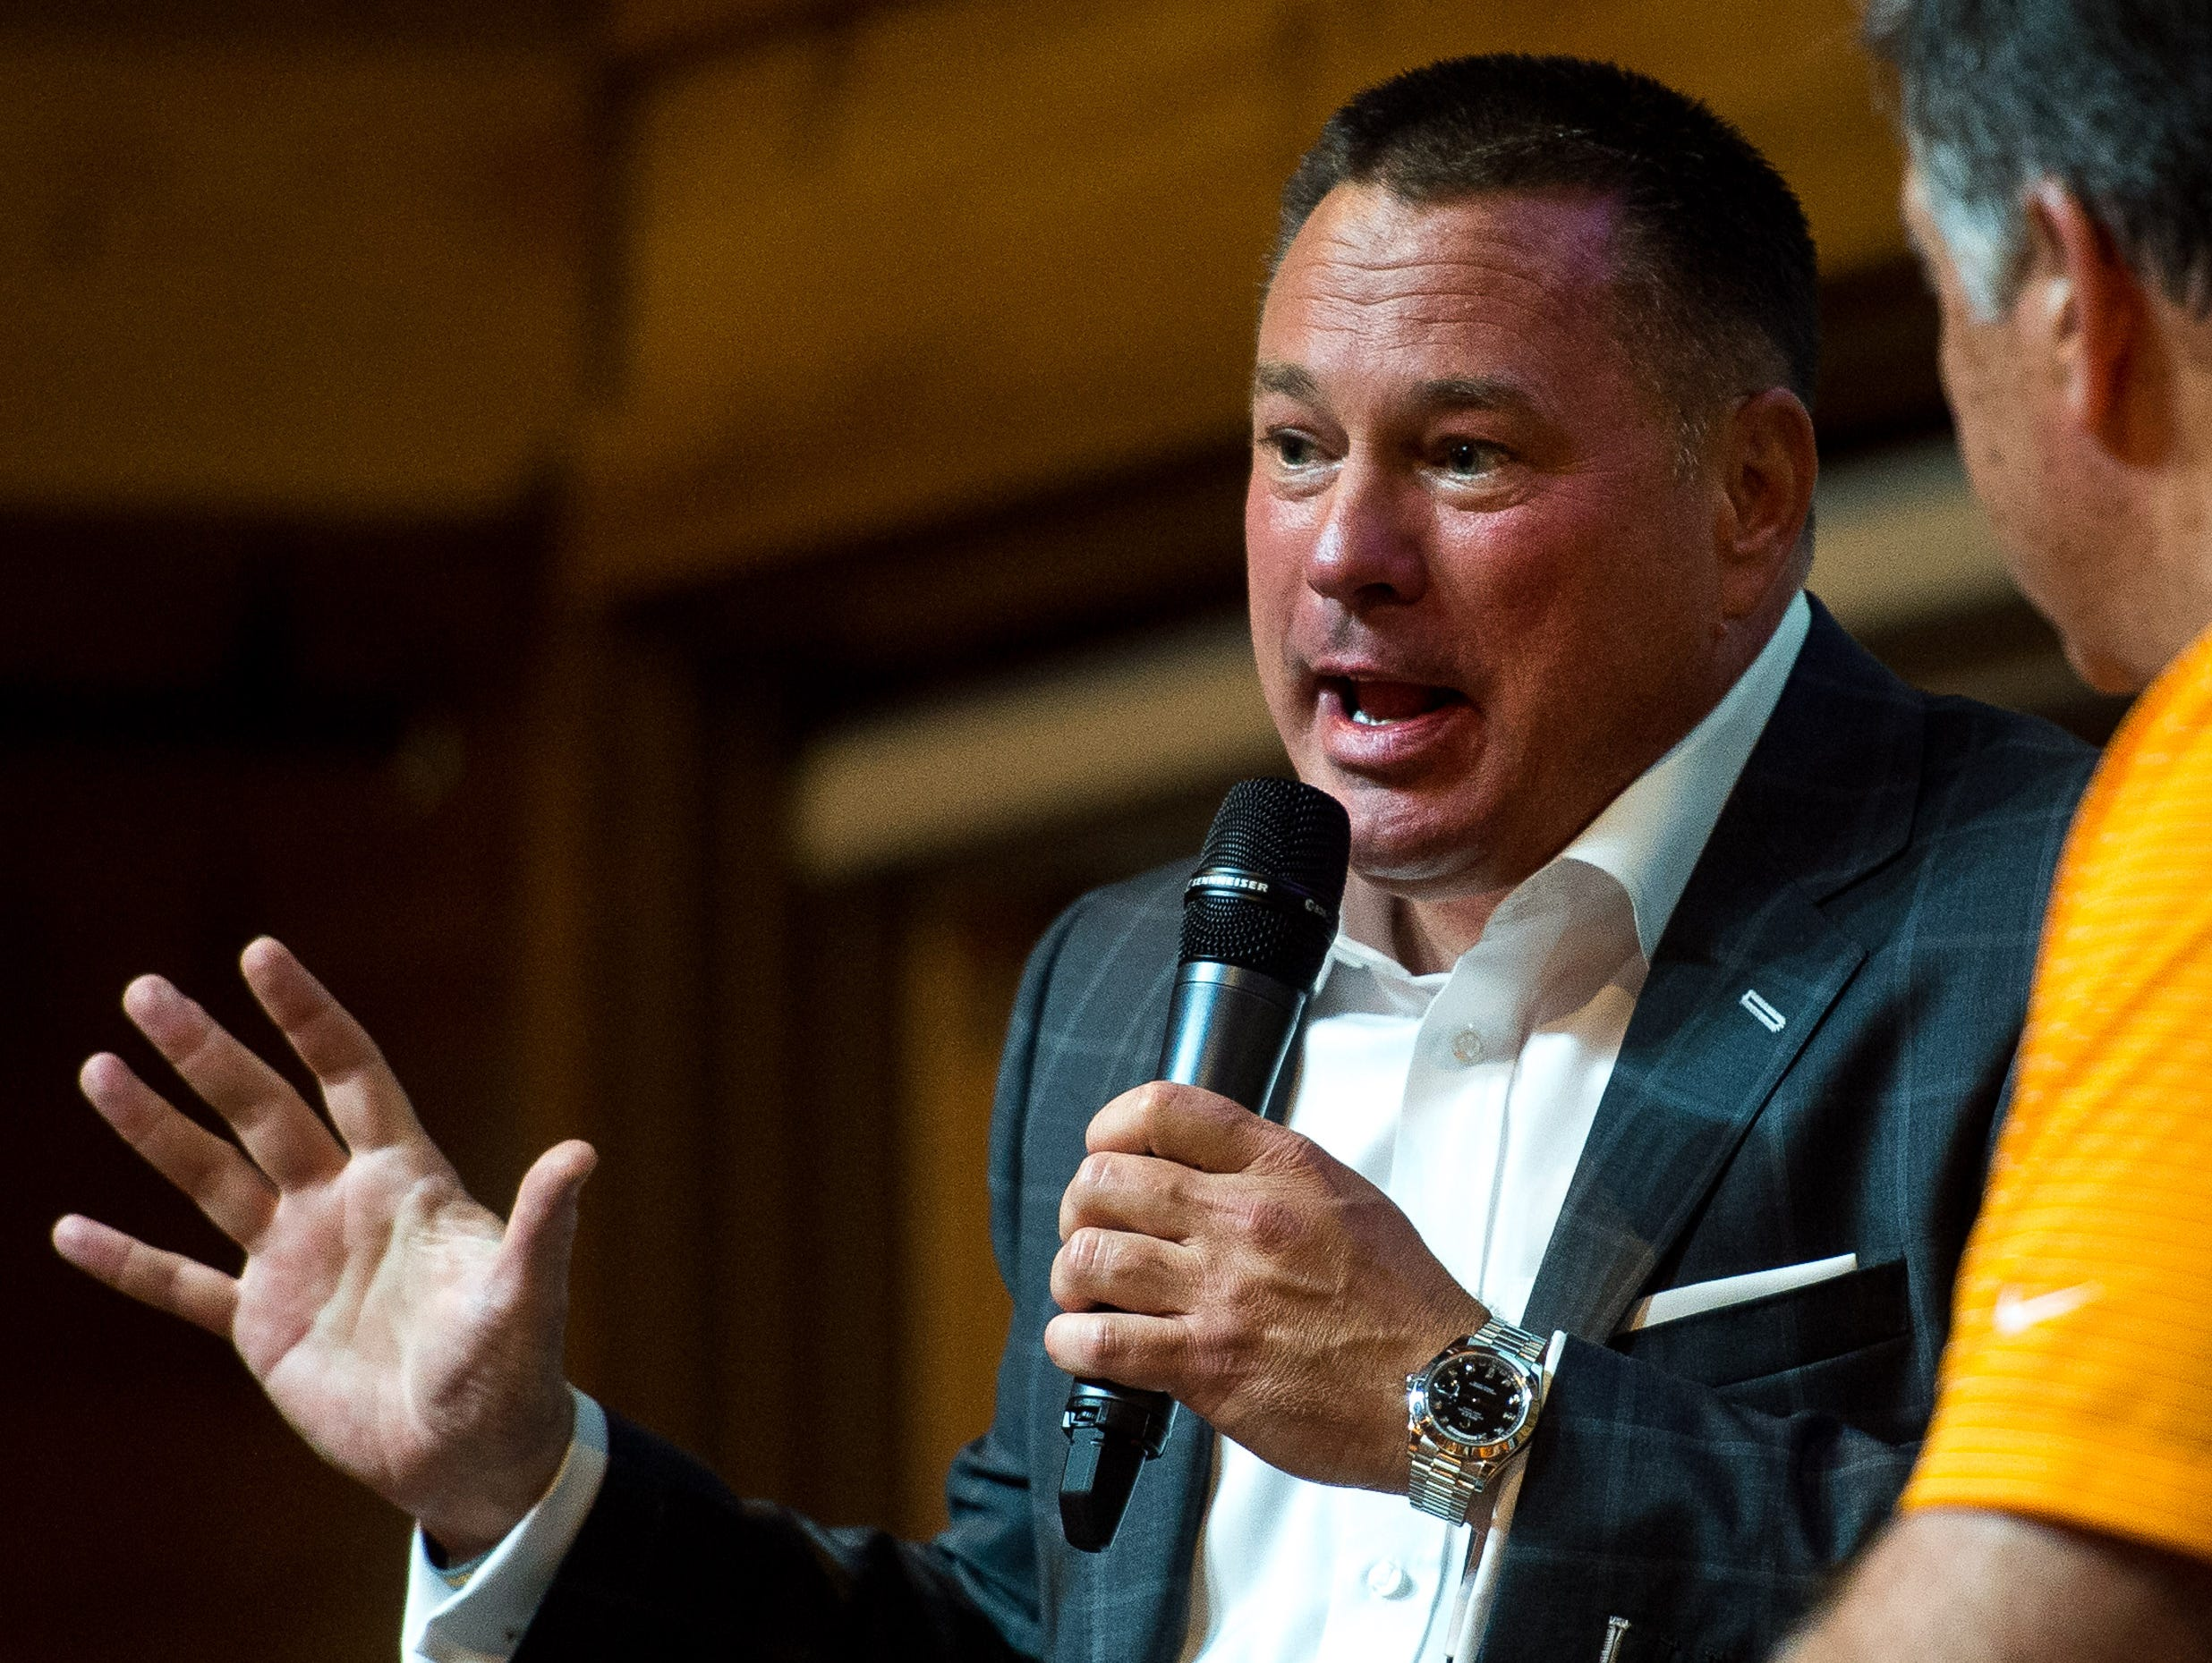 """Butch Jones, left, University of Tennessee football coach, speaks with """"The Voice of the Vols"""" Bob Kesling during a Big Orange Caravan event at The Barn at Sycamore Farms in Arrington, Tenn., Monday, July 10, 2017."""